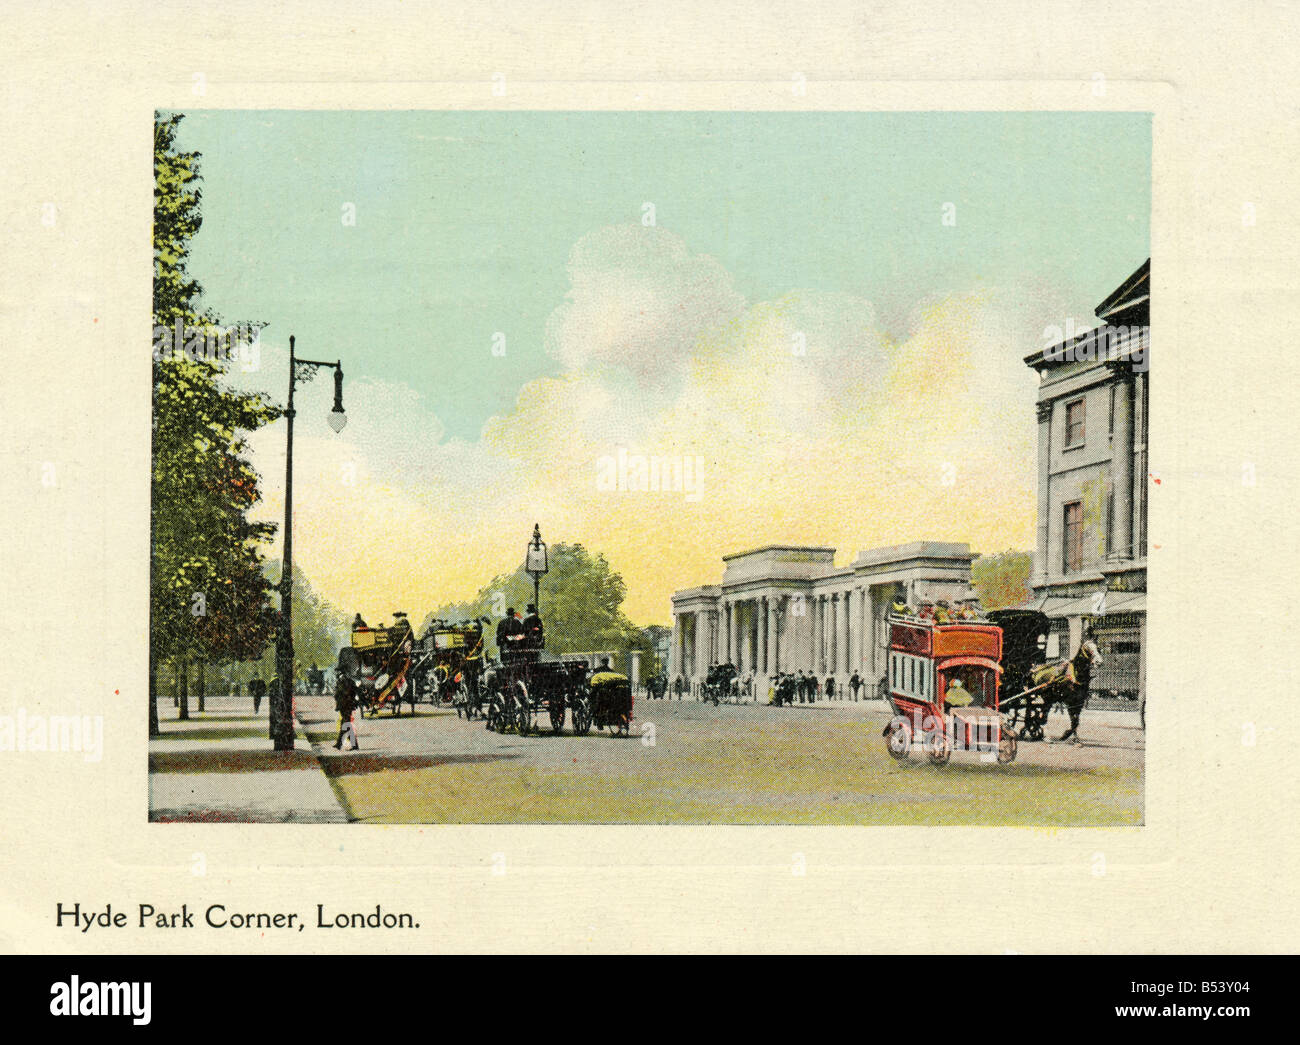 Old vintage picture postcard of Hyde Park Corner London EDITORIAL USE ONLY - Stock Image